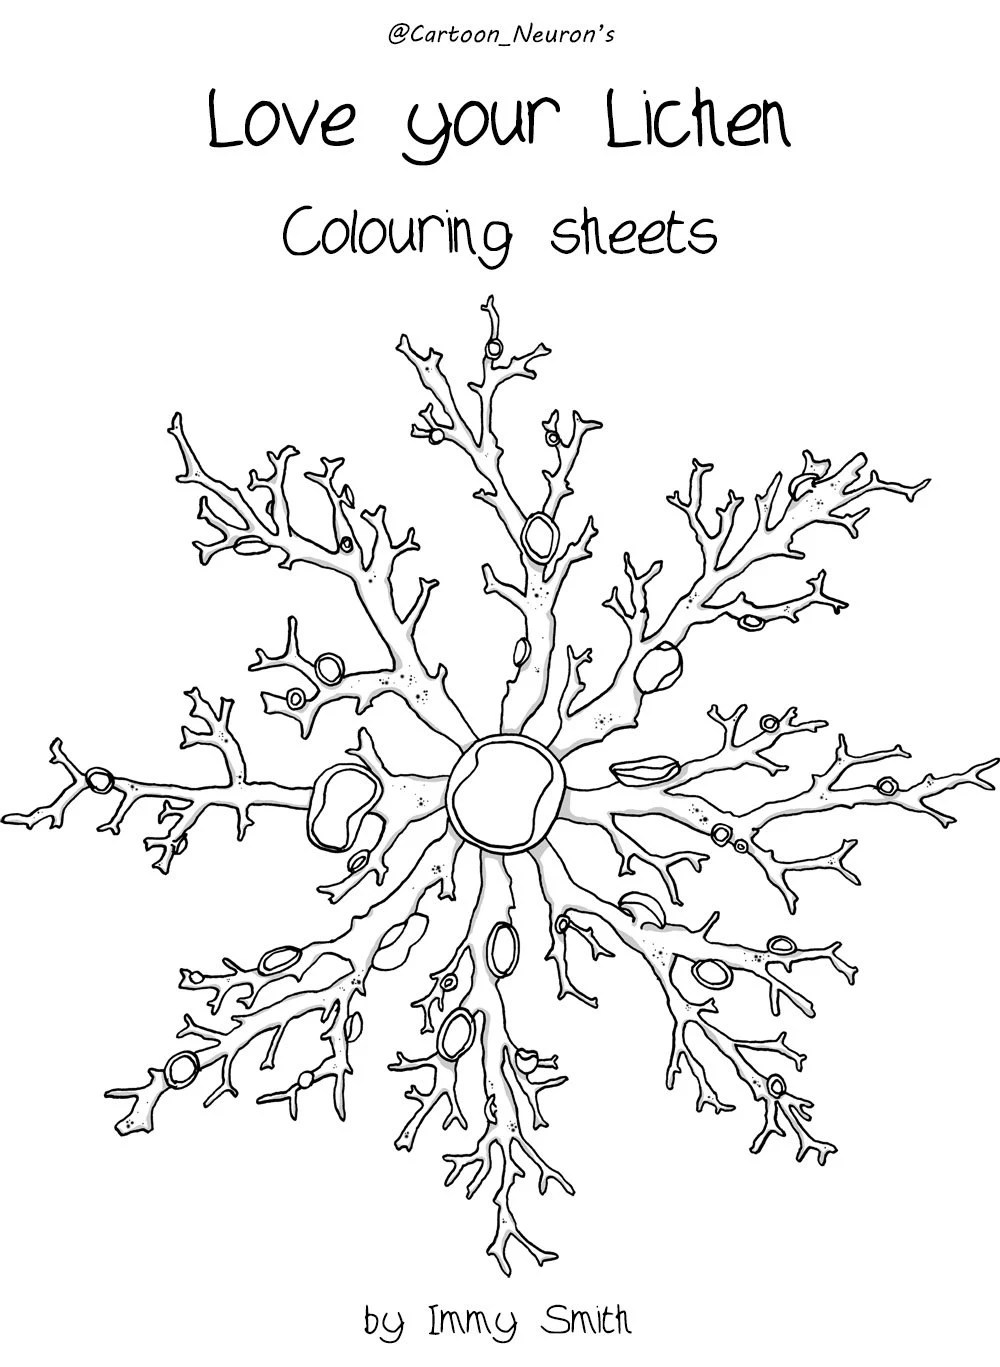 Coloring book Love Your Lichen Colouring Sheets Printable